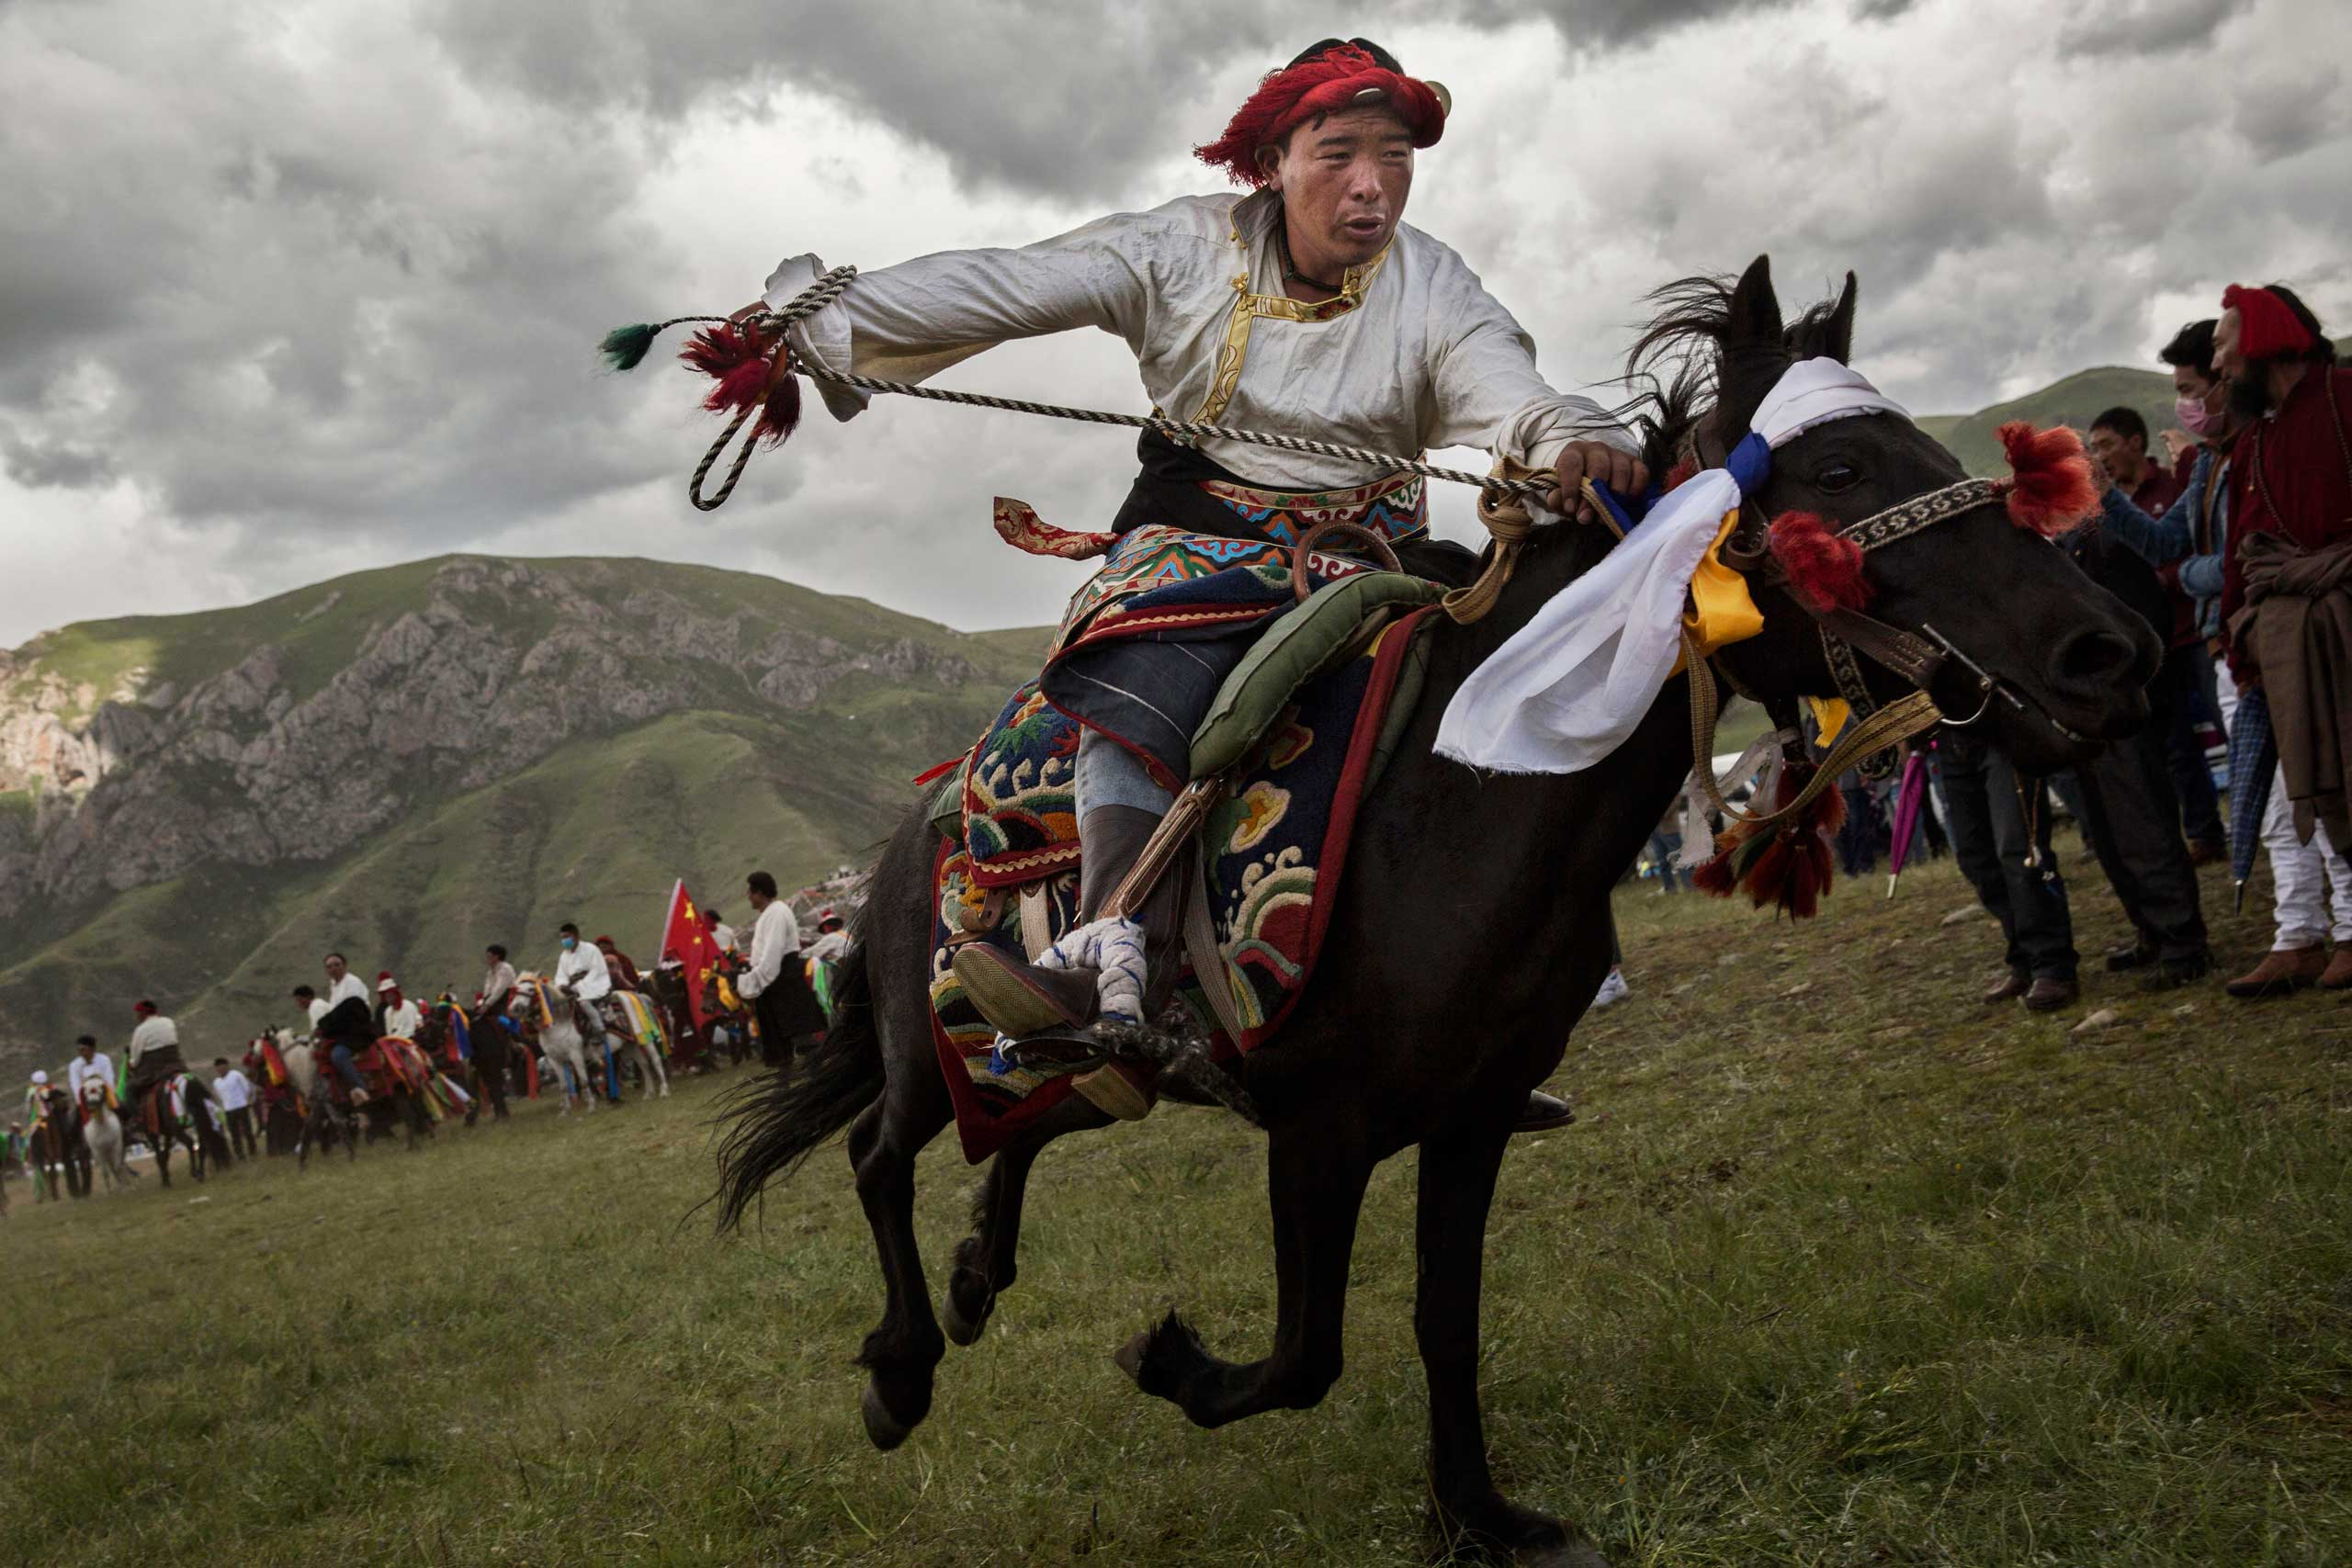 An ethnic Tibetan nomad performs skills during a riding competition at a local festival on the Tibetan Plateau in Yushu County, on July 26, 2015.